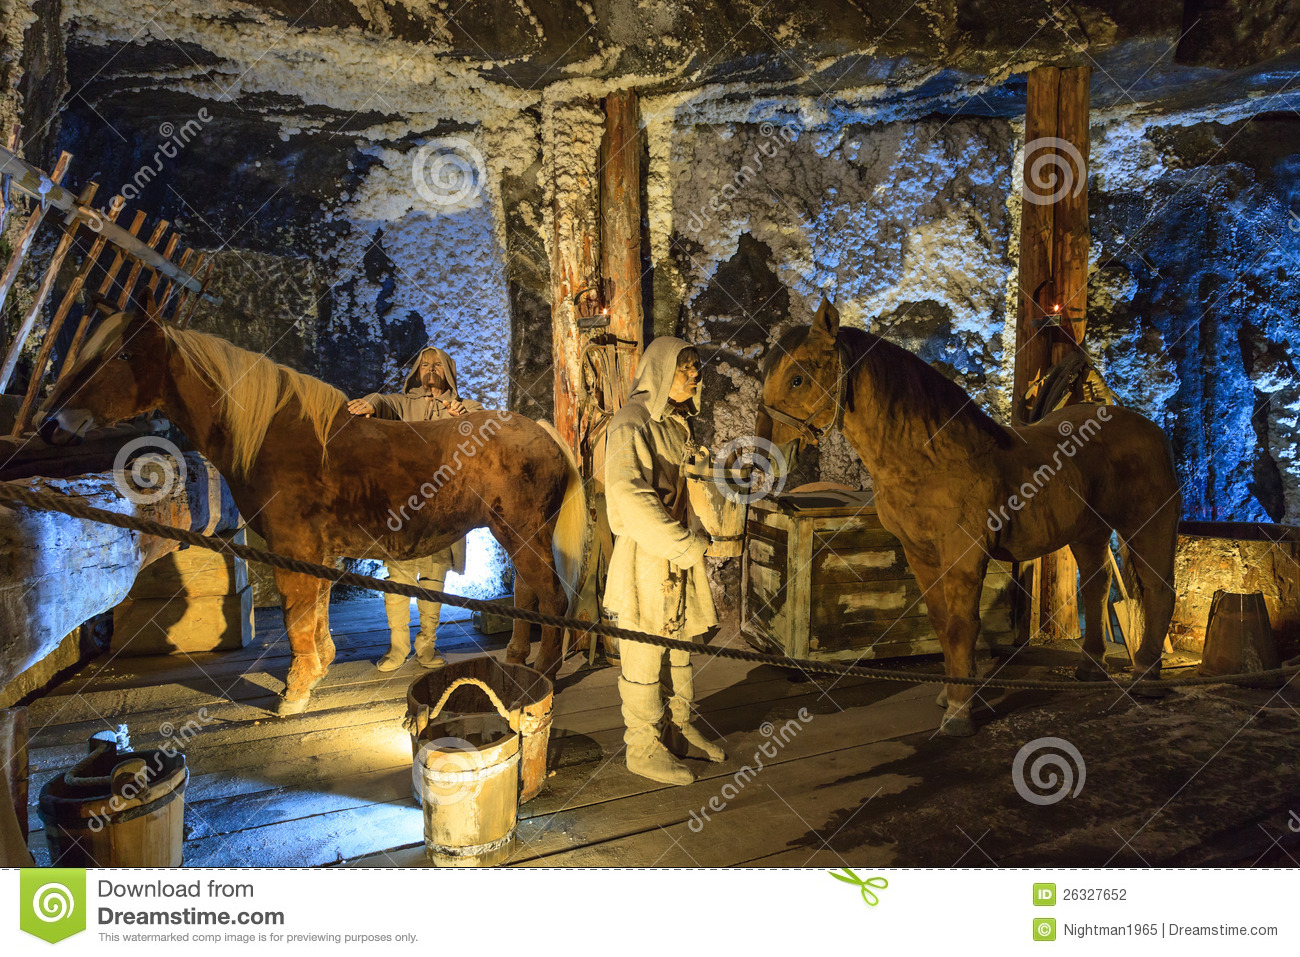 Medieval miner and horses at work in Wieliczka